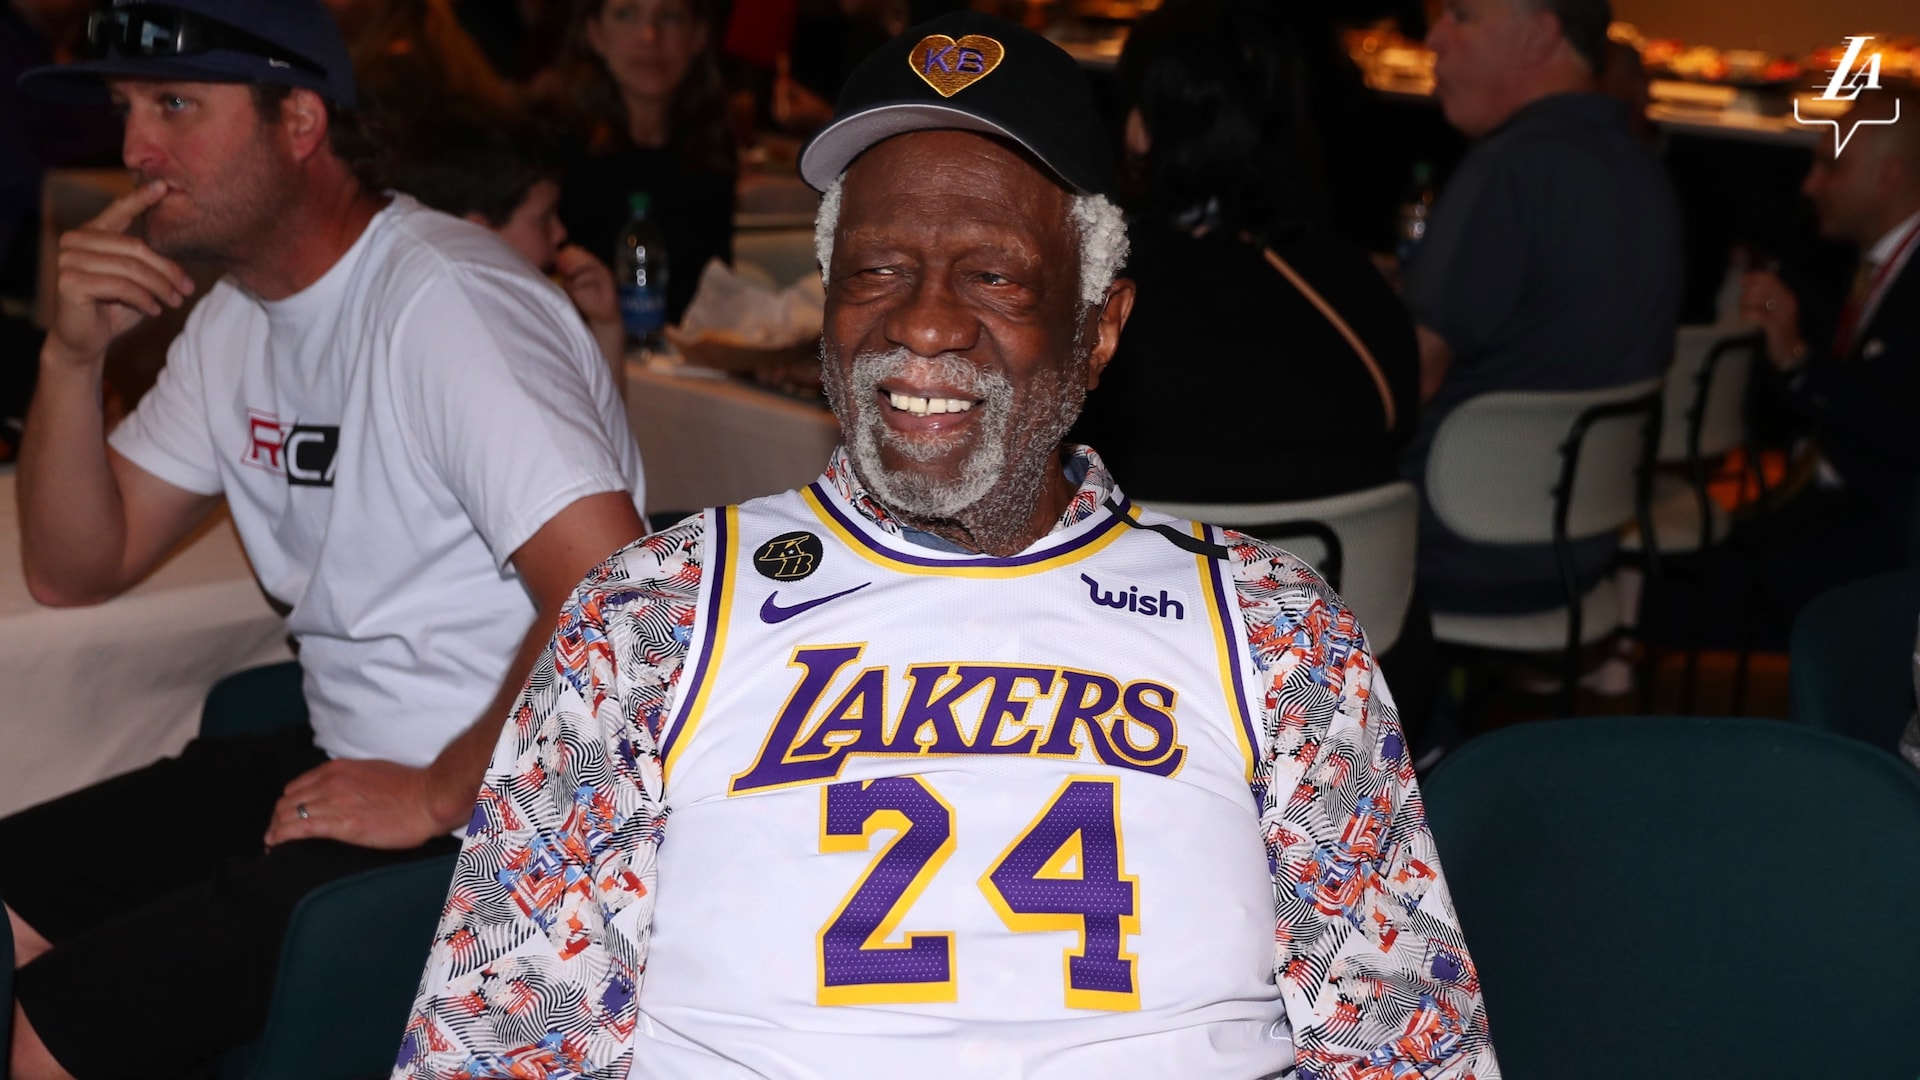 Bill Russell wears Kobe Bryant jersey to Celtics-Lakers game